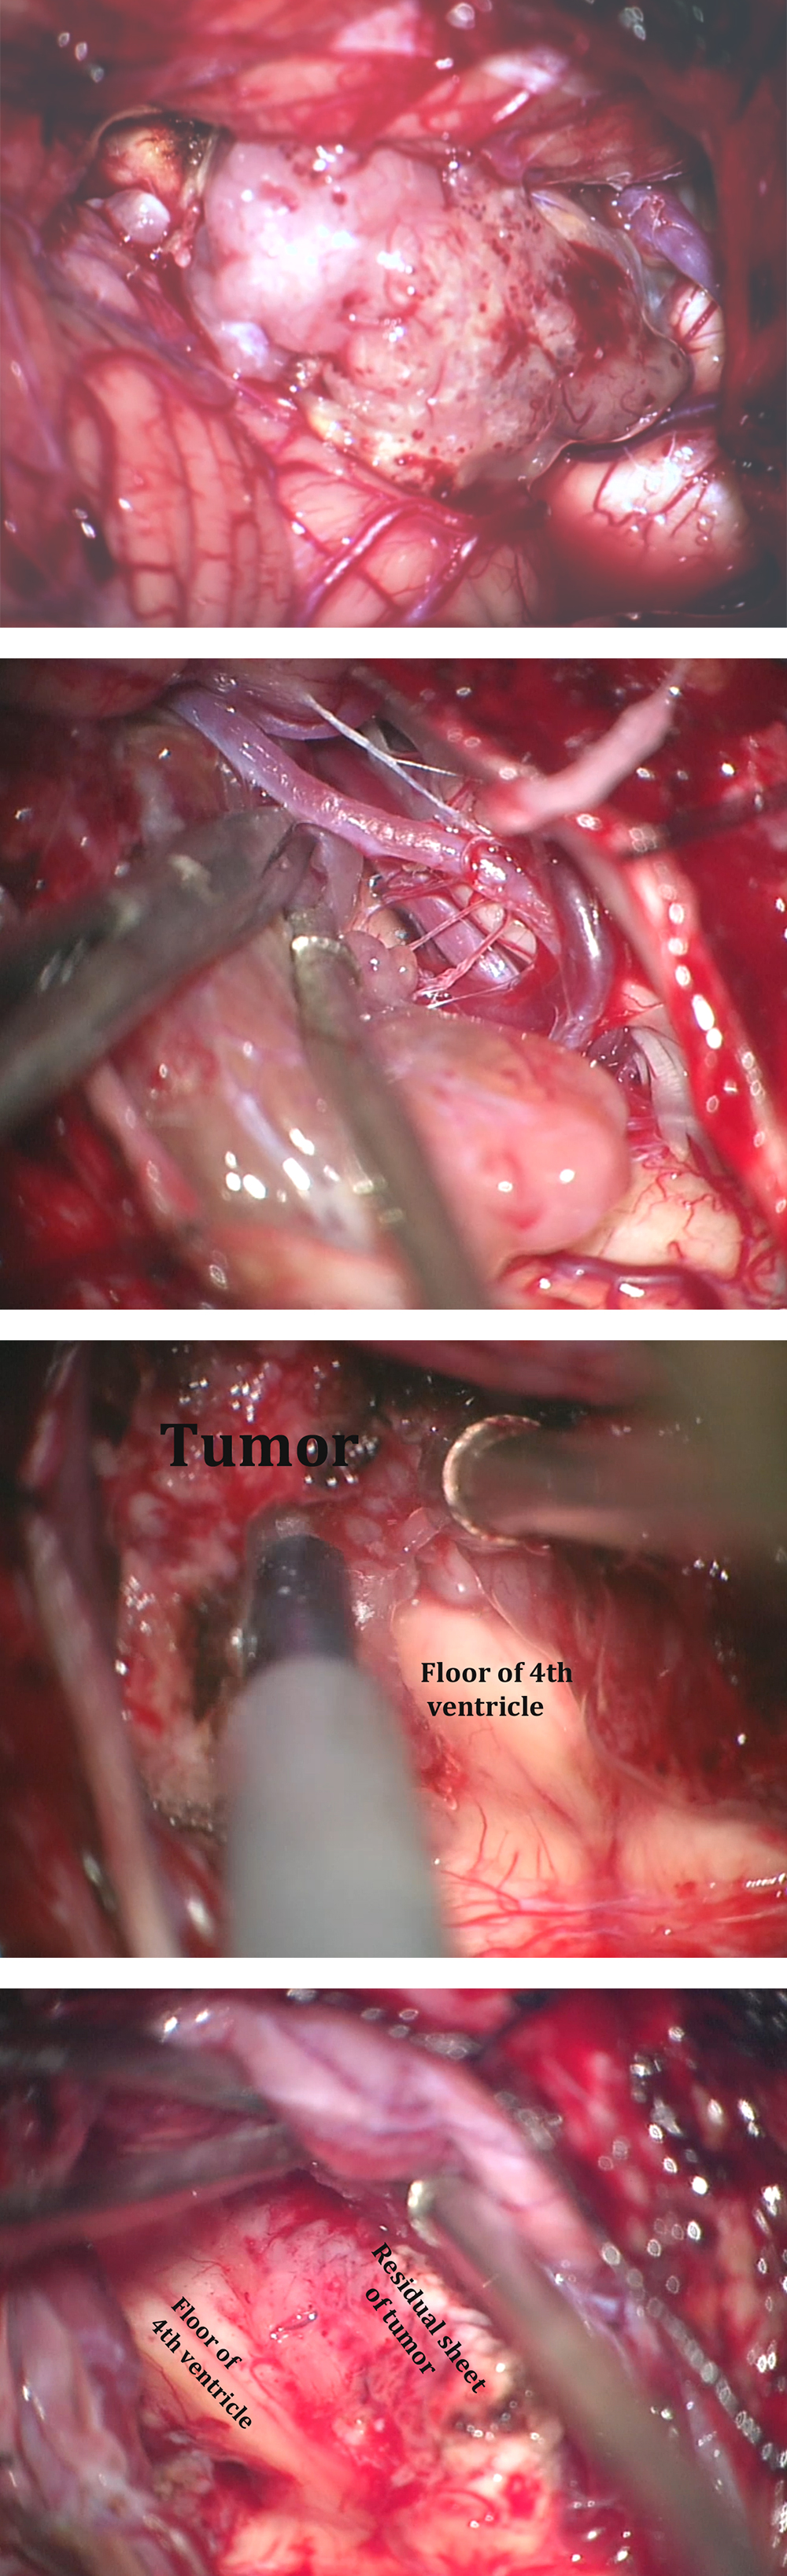 Figure 12: These intraoperative photos demonstrate the steps involved in resection of the ependymoma shown in Figure 2. The top two images show the tumor and microsurgical dissection of the right PICA. The bottom two images show tumor removal using ultrasonic aspiration while leaving a thin sheet of tumor over the infiltrated floor laterally (lower image-right brachium pontis).